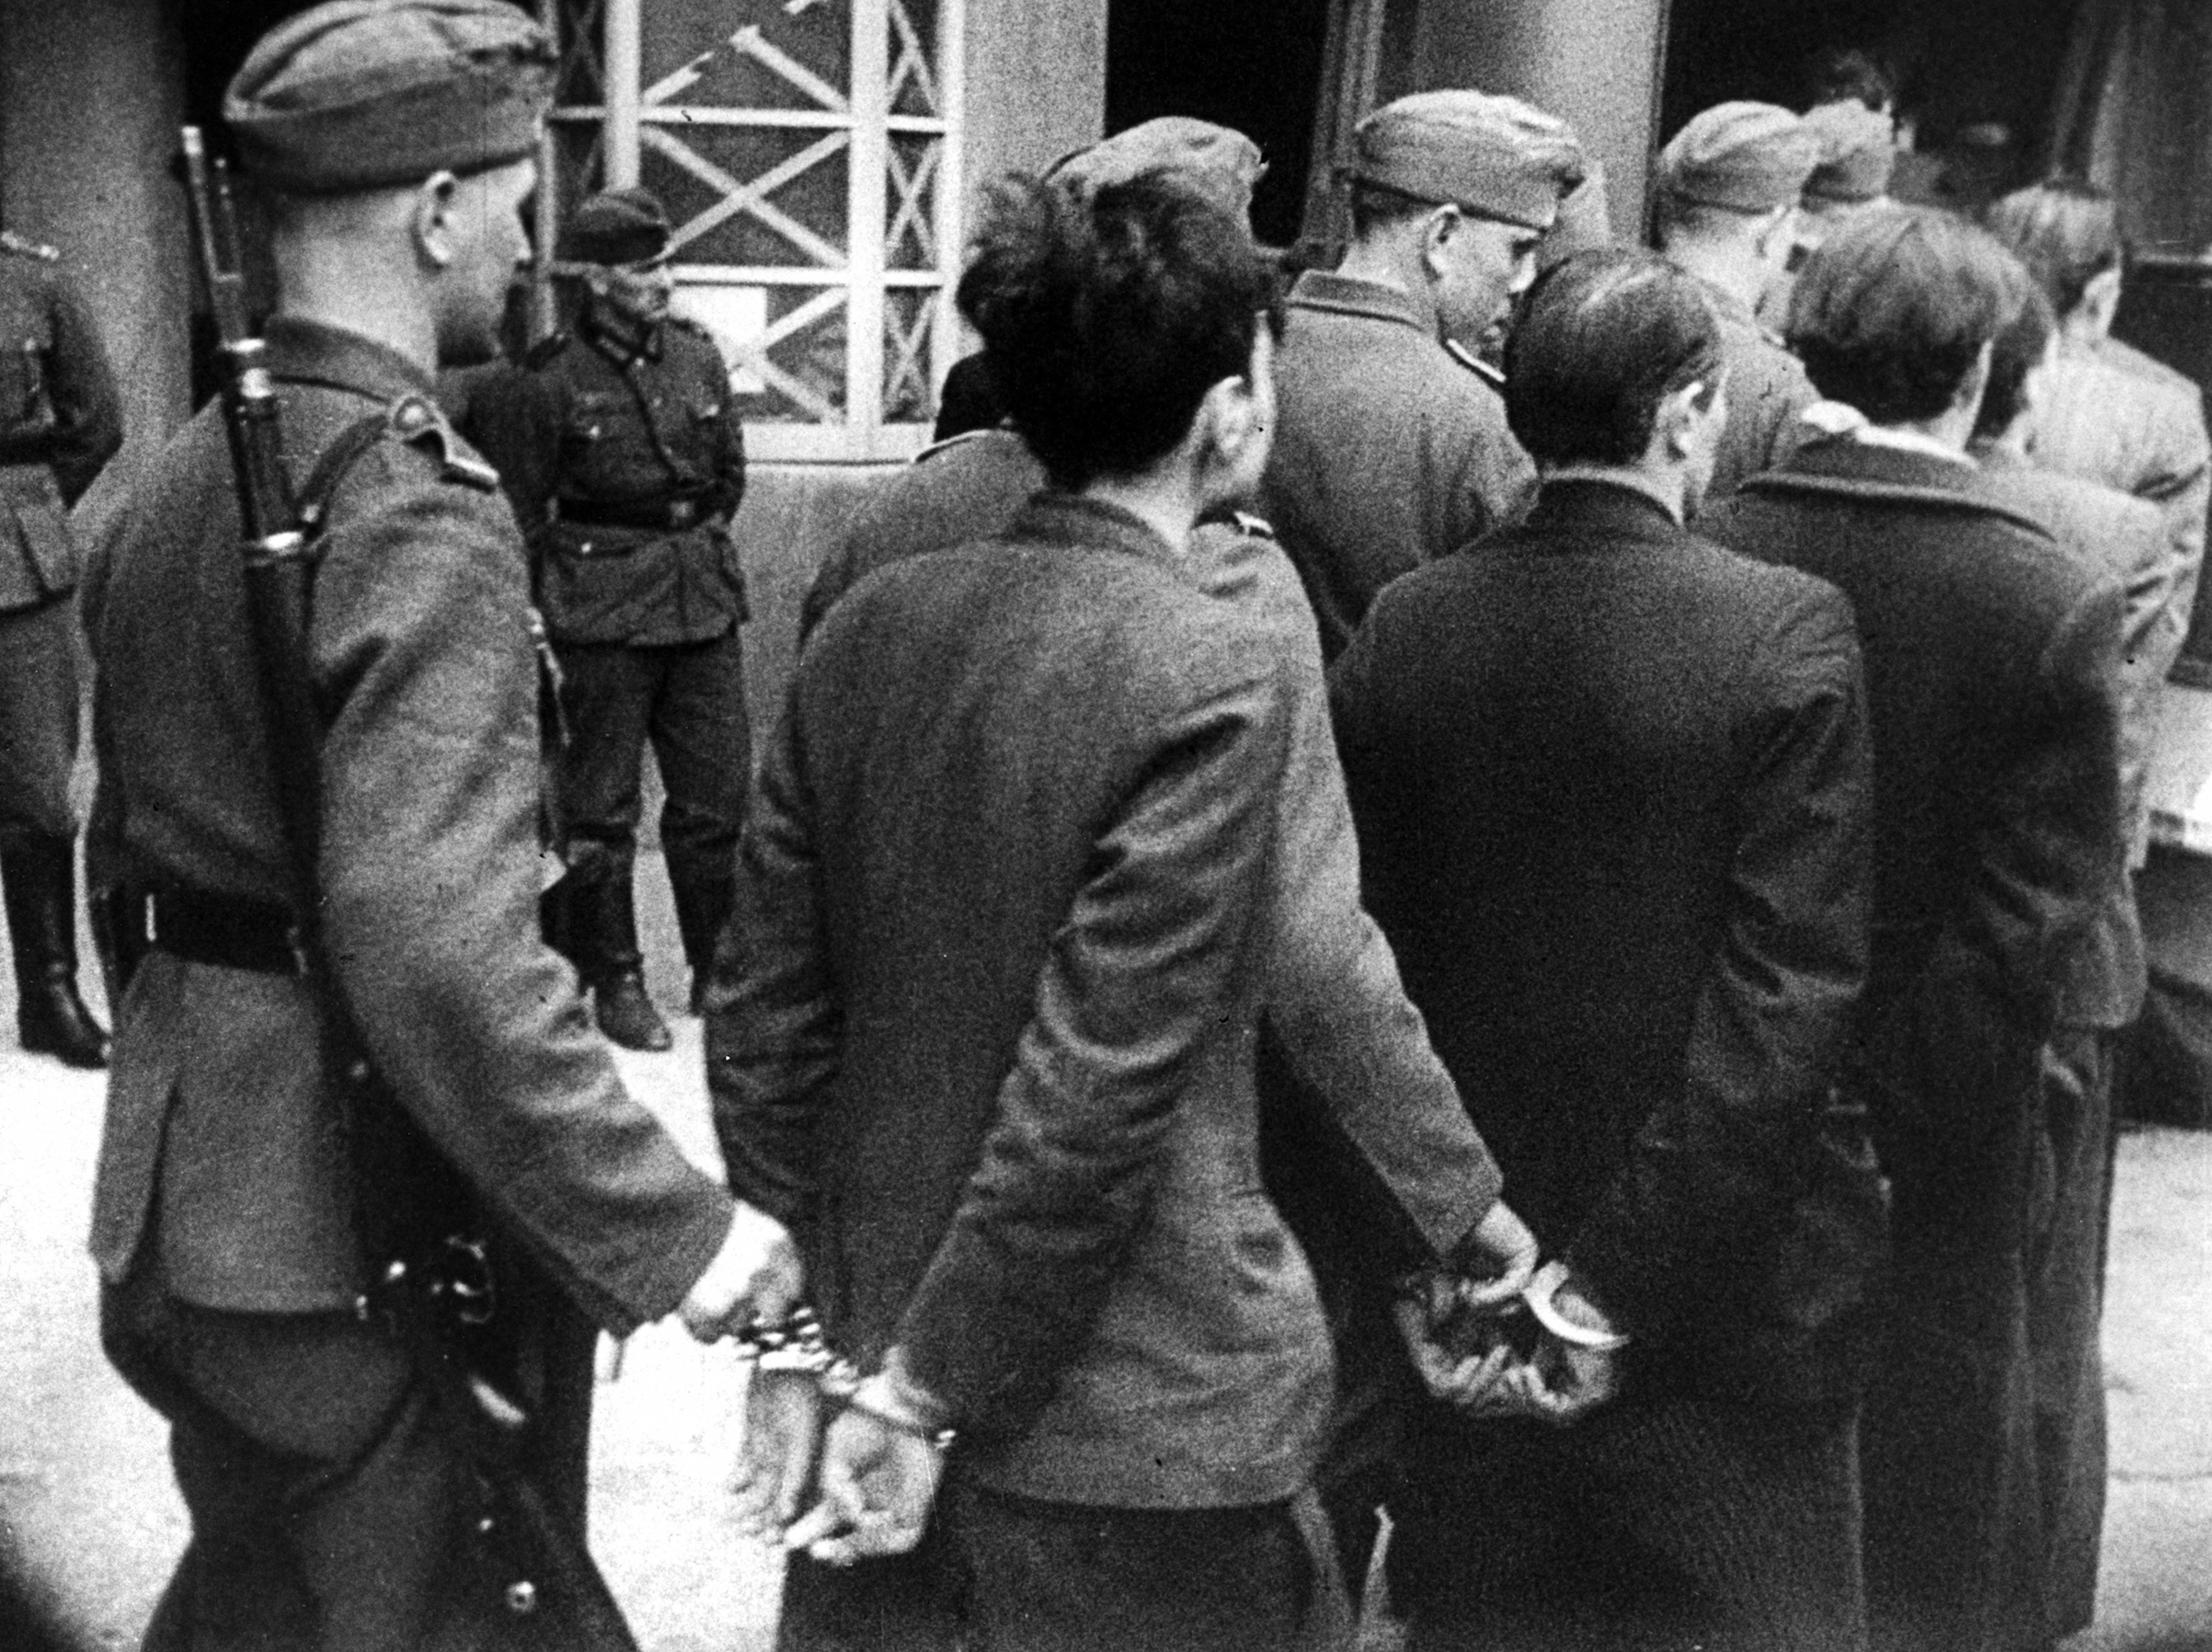 Members of the French Resistance being taken for execution after a trial before a German military tribunal, Paris, April 14, 1942.